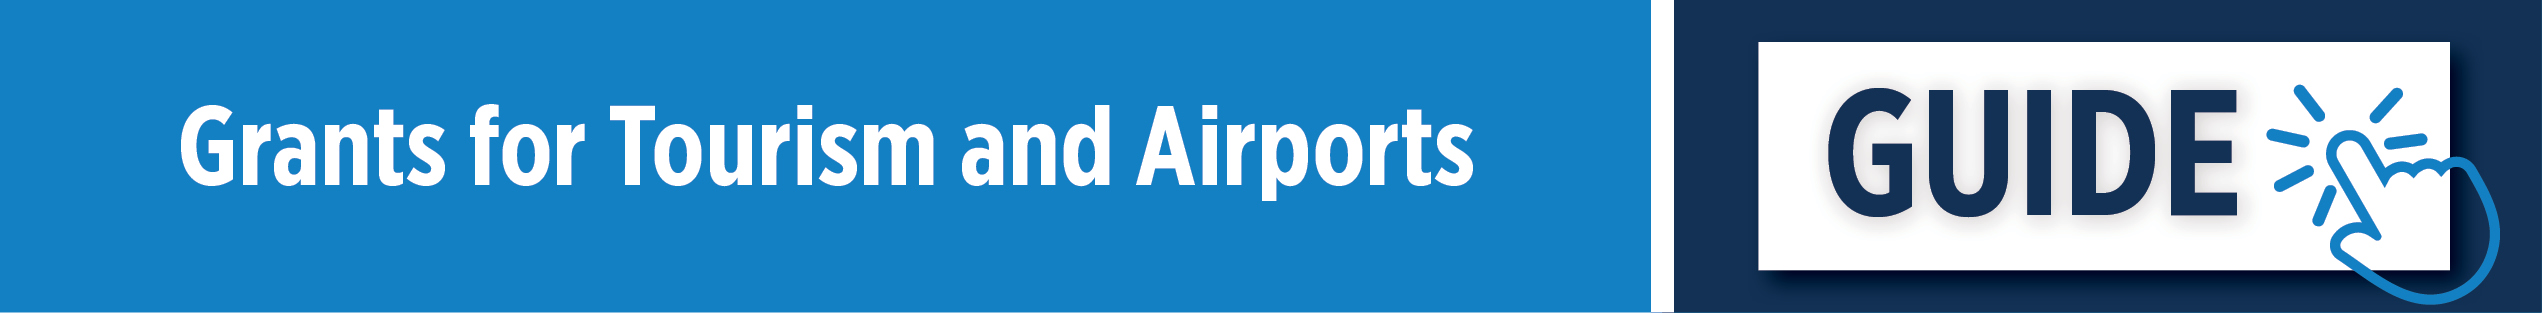 Grants for Tourism and Airports